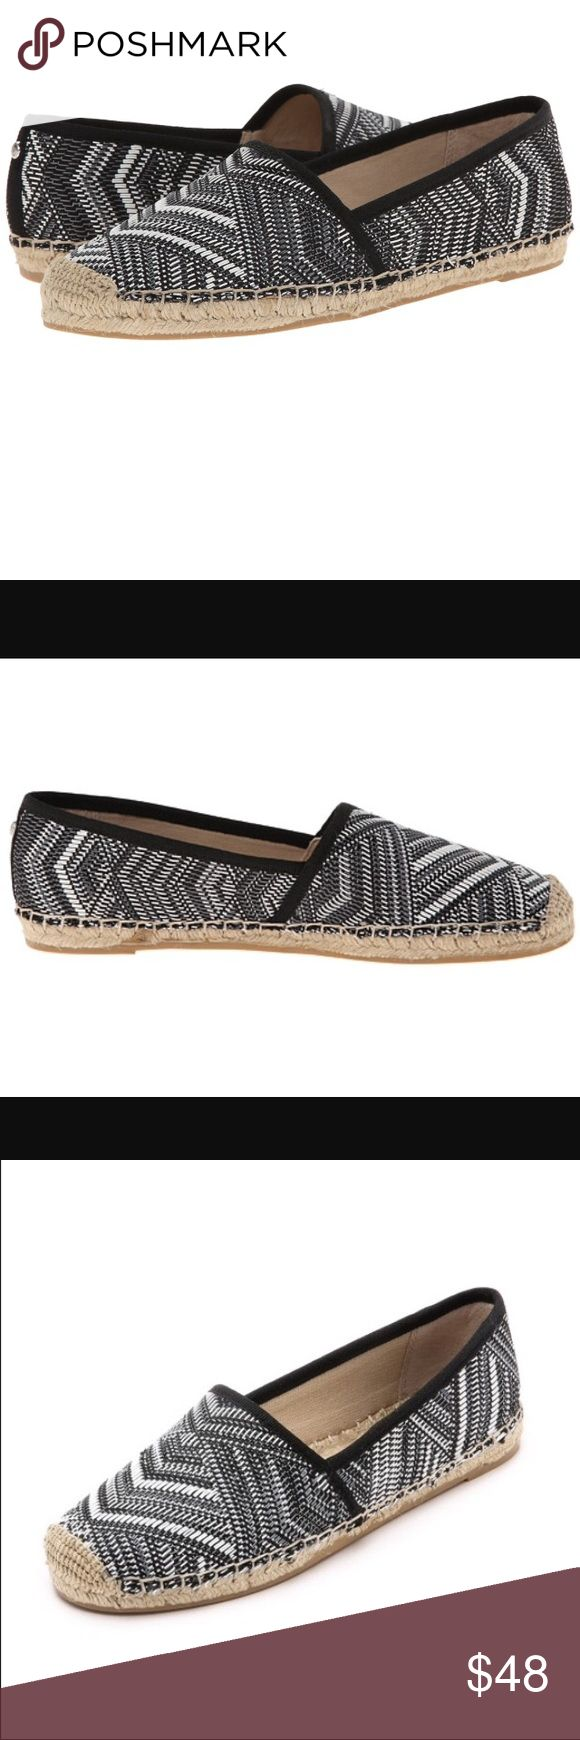 Sam Edelman Lynn 8.5 Black White Woven Espadrille. Sam Edelman Lynn 1 Women 8.5 M Black White Woven Espadrille new in box  Woven fabric upper. Easy slip-on wear. Man-made lining. Jute rope footbed and wrapped midsole. Rubber outsole. Imported. Posted with eBay Mobile Sam Edelman Shoes Espadrilles